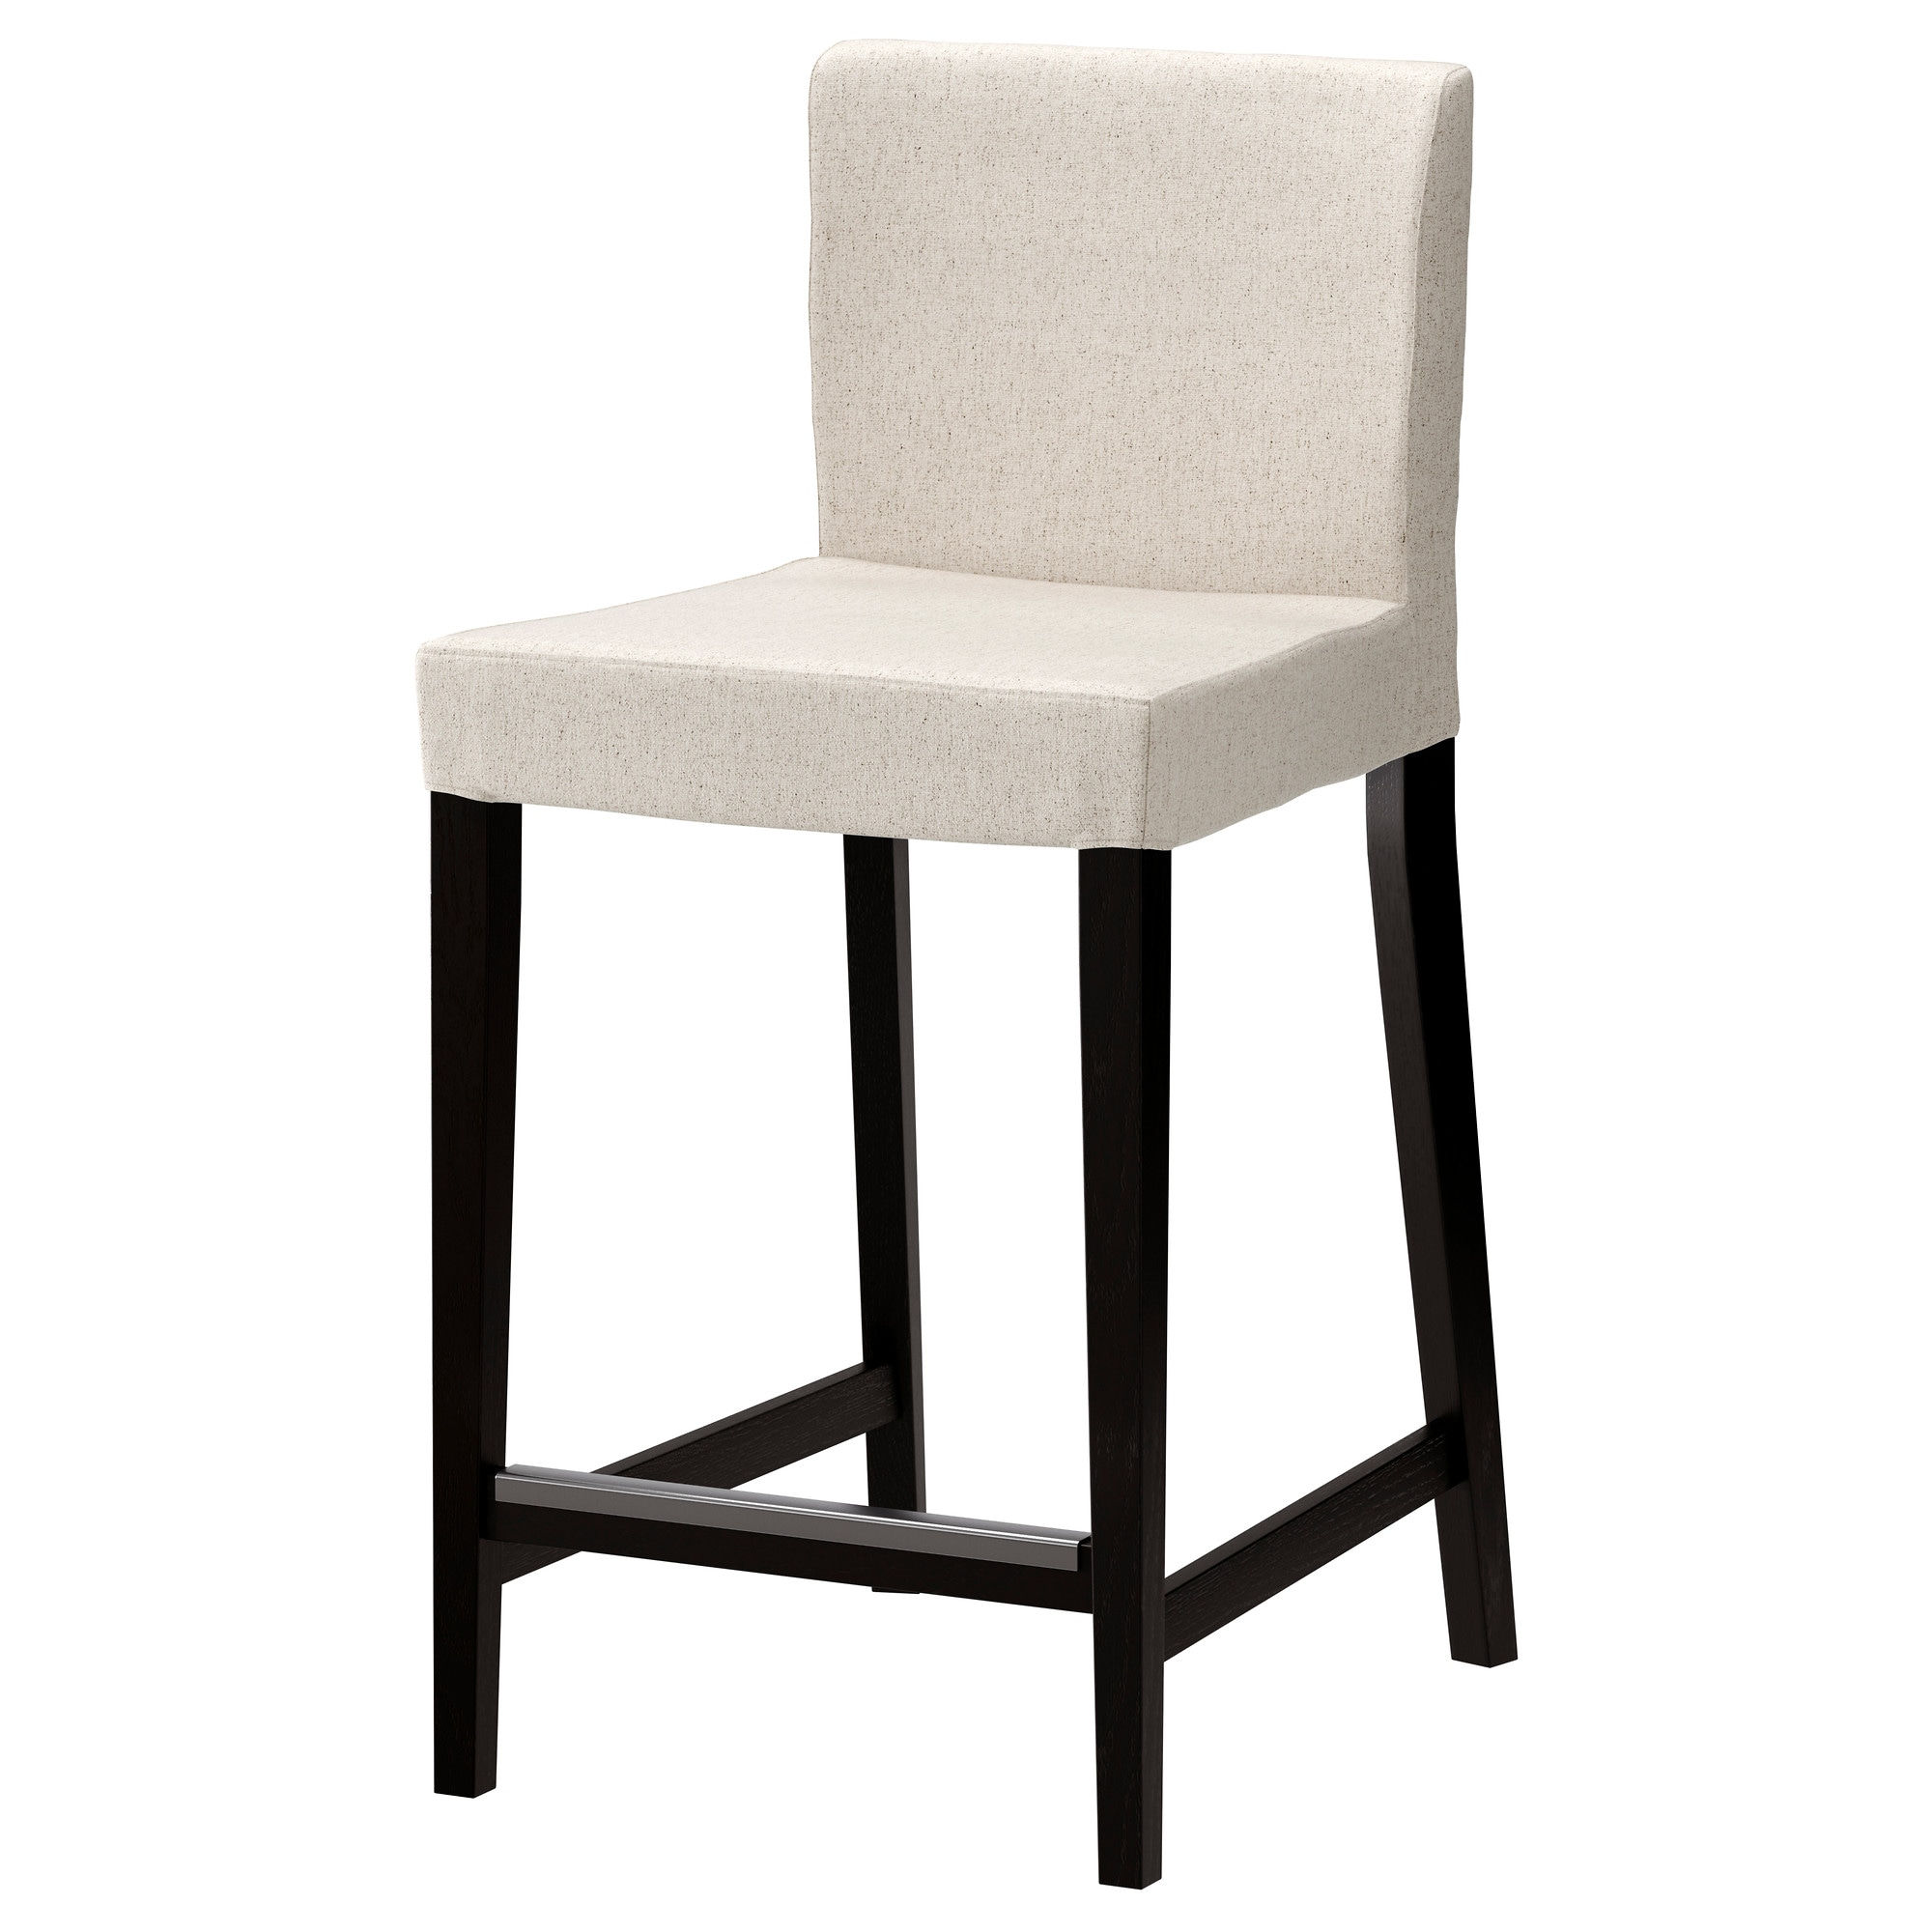 HENRIKSDAL bar stool with backrest, brown-black, Linneryd natural Tested  for: 220